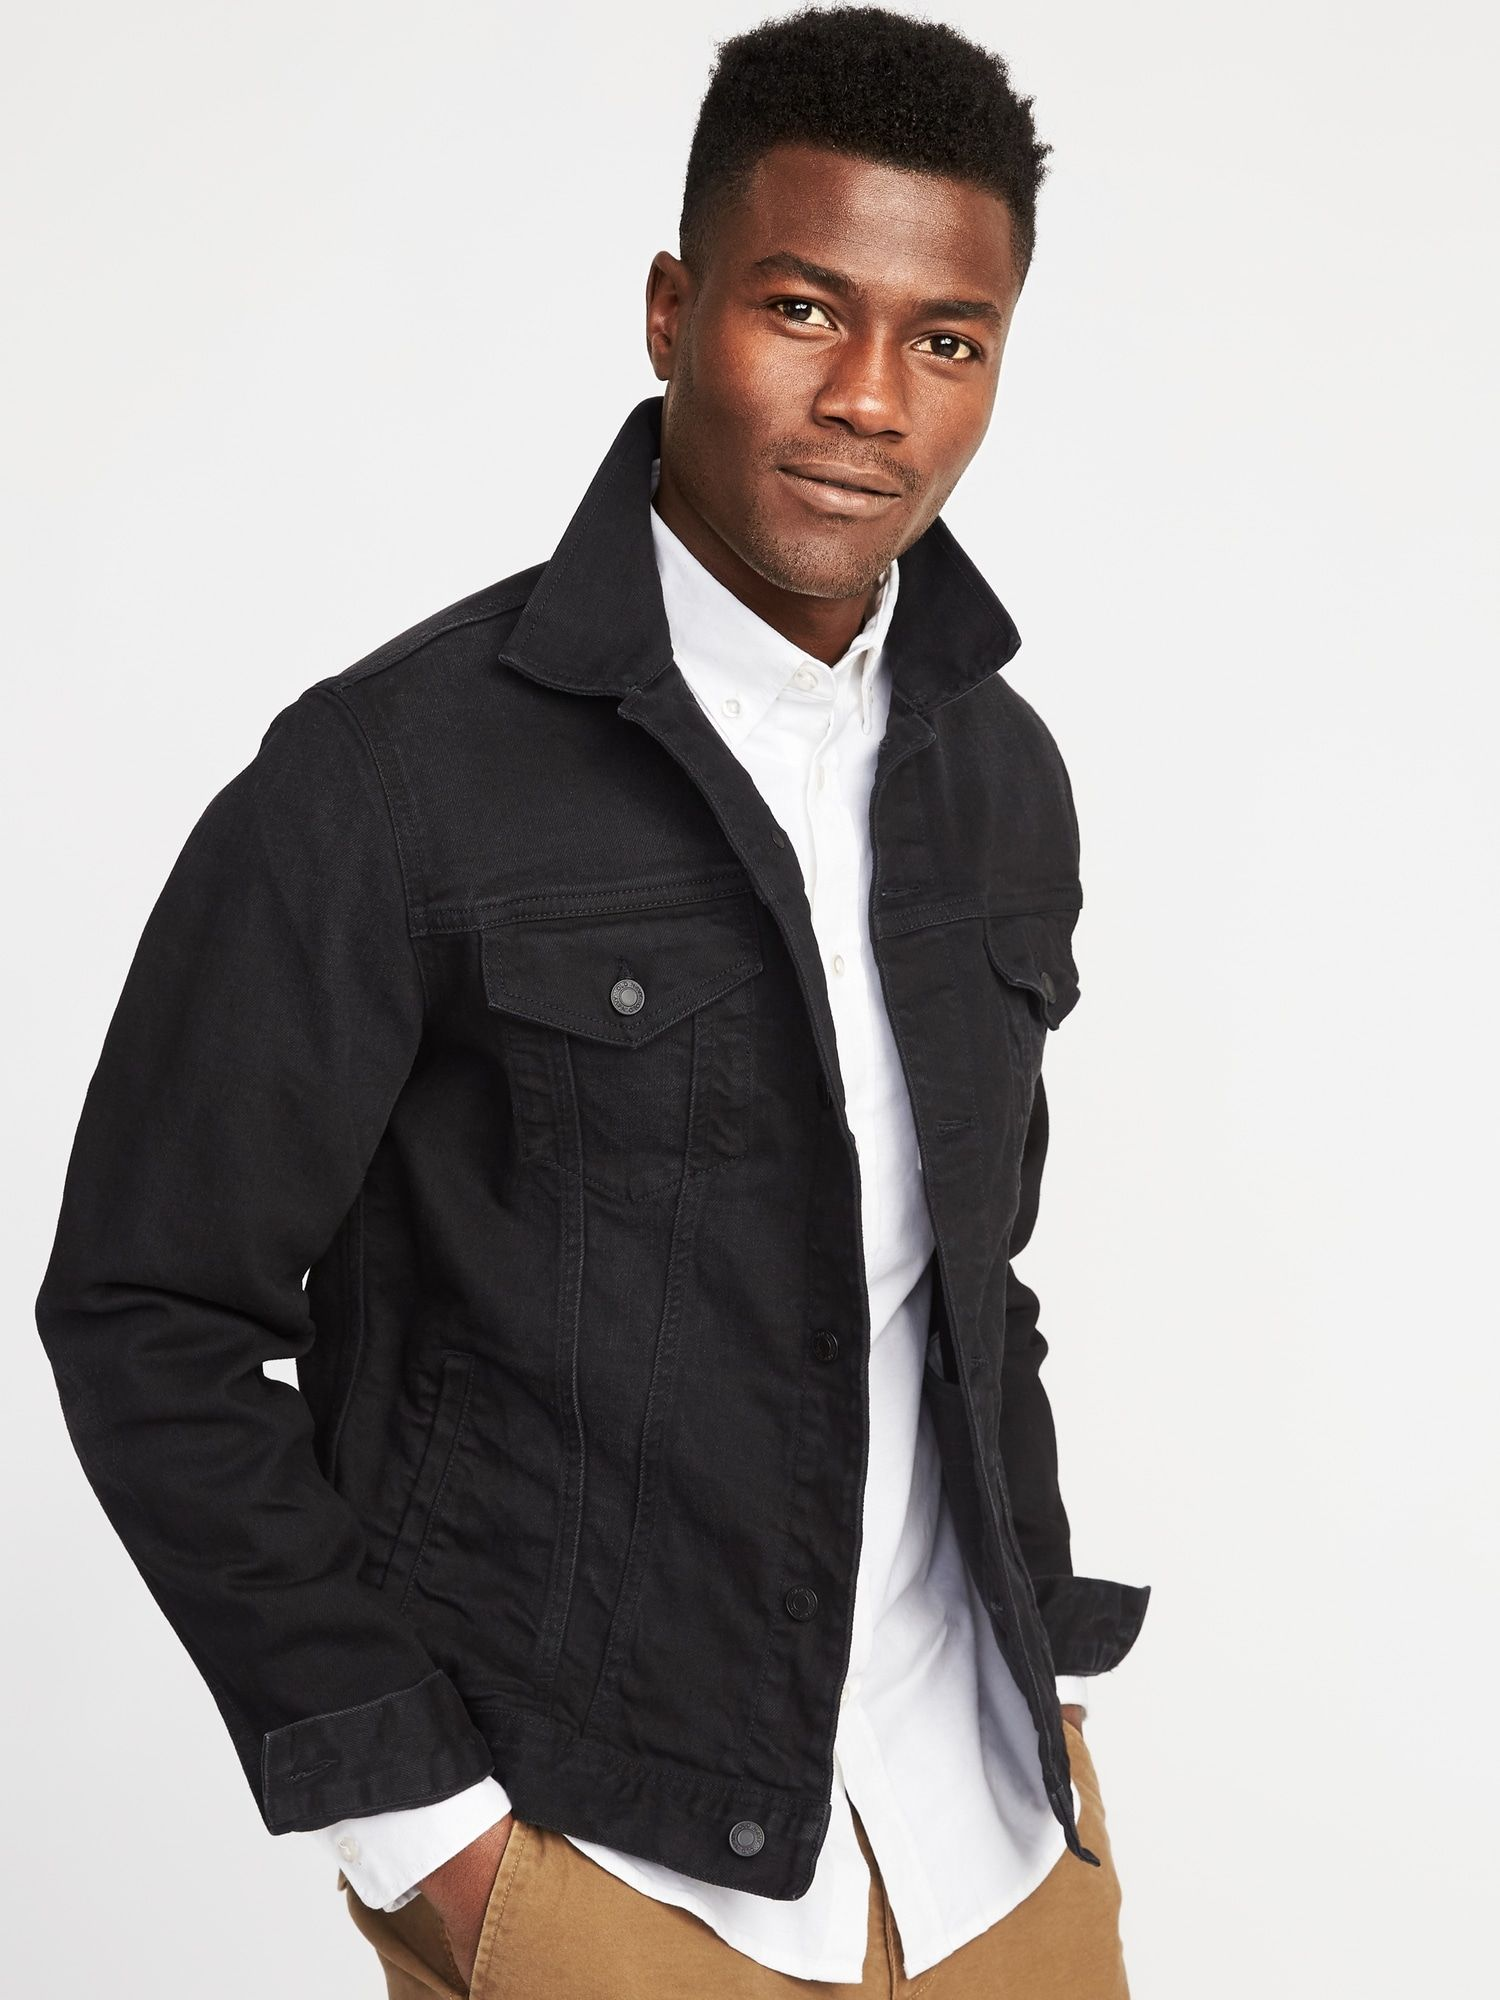 A jet black denim jacket is a striking departure from the